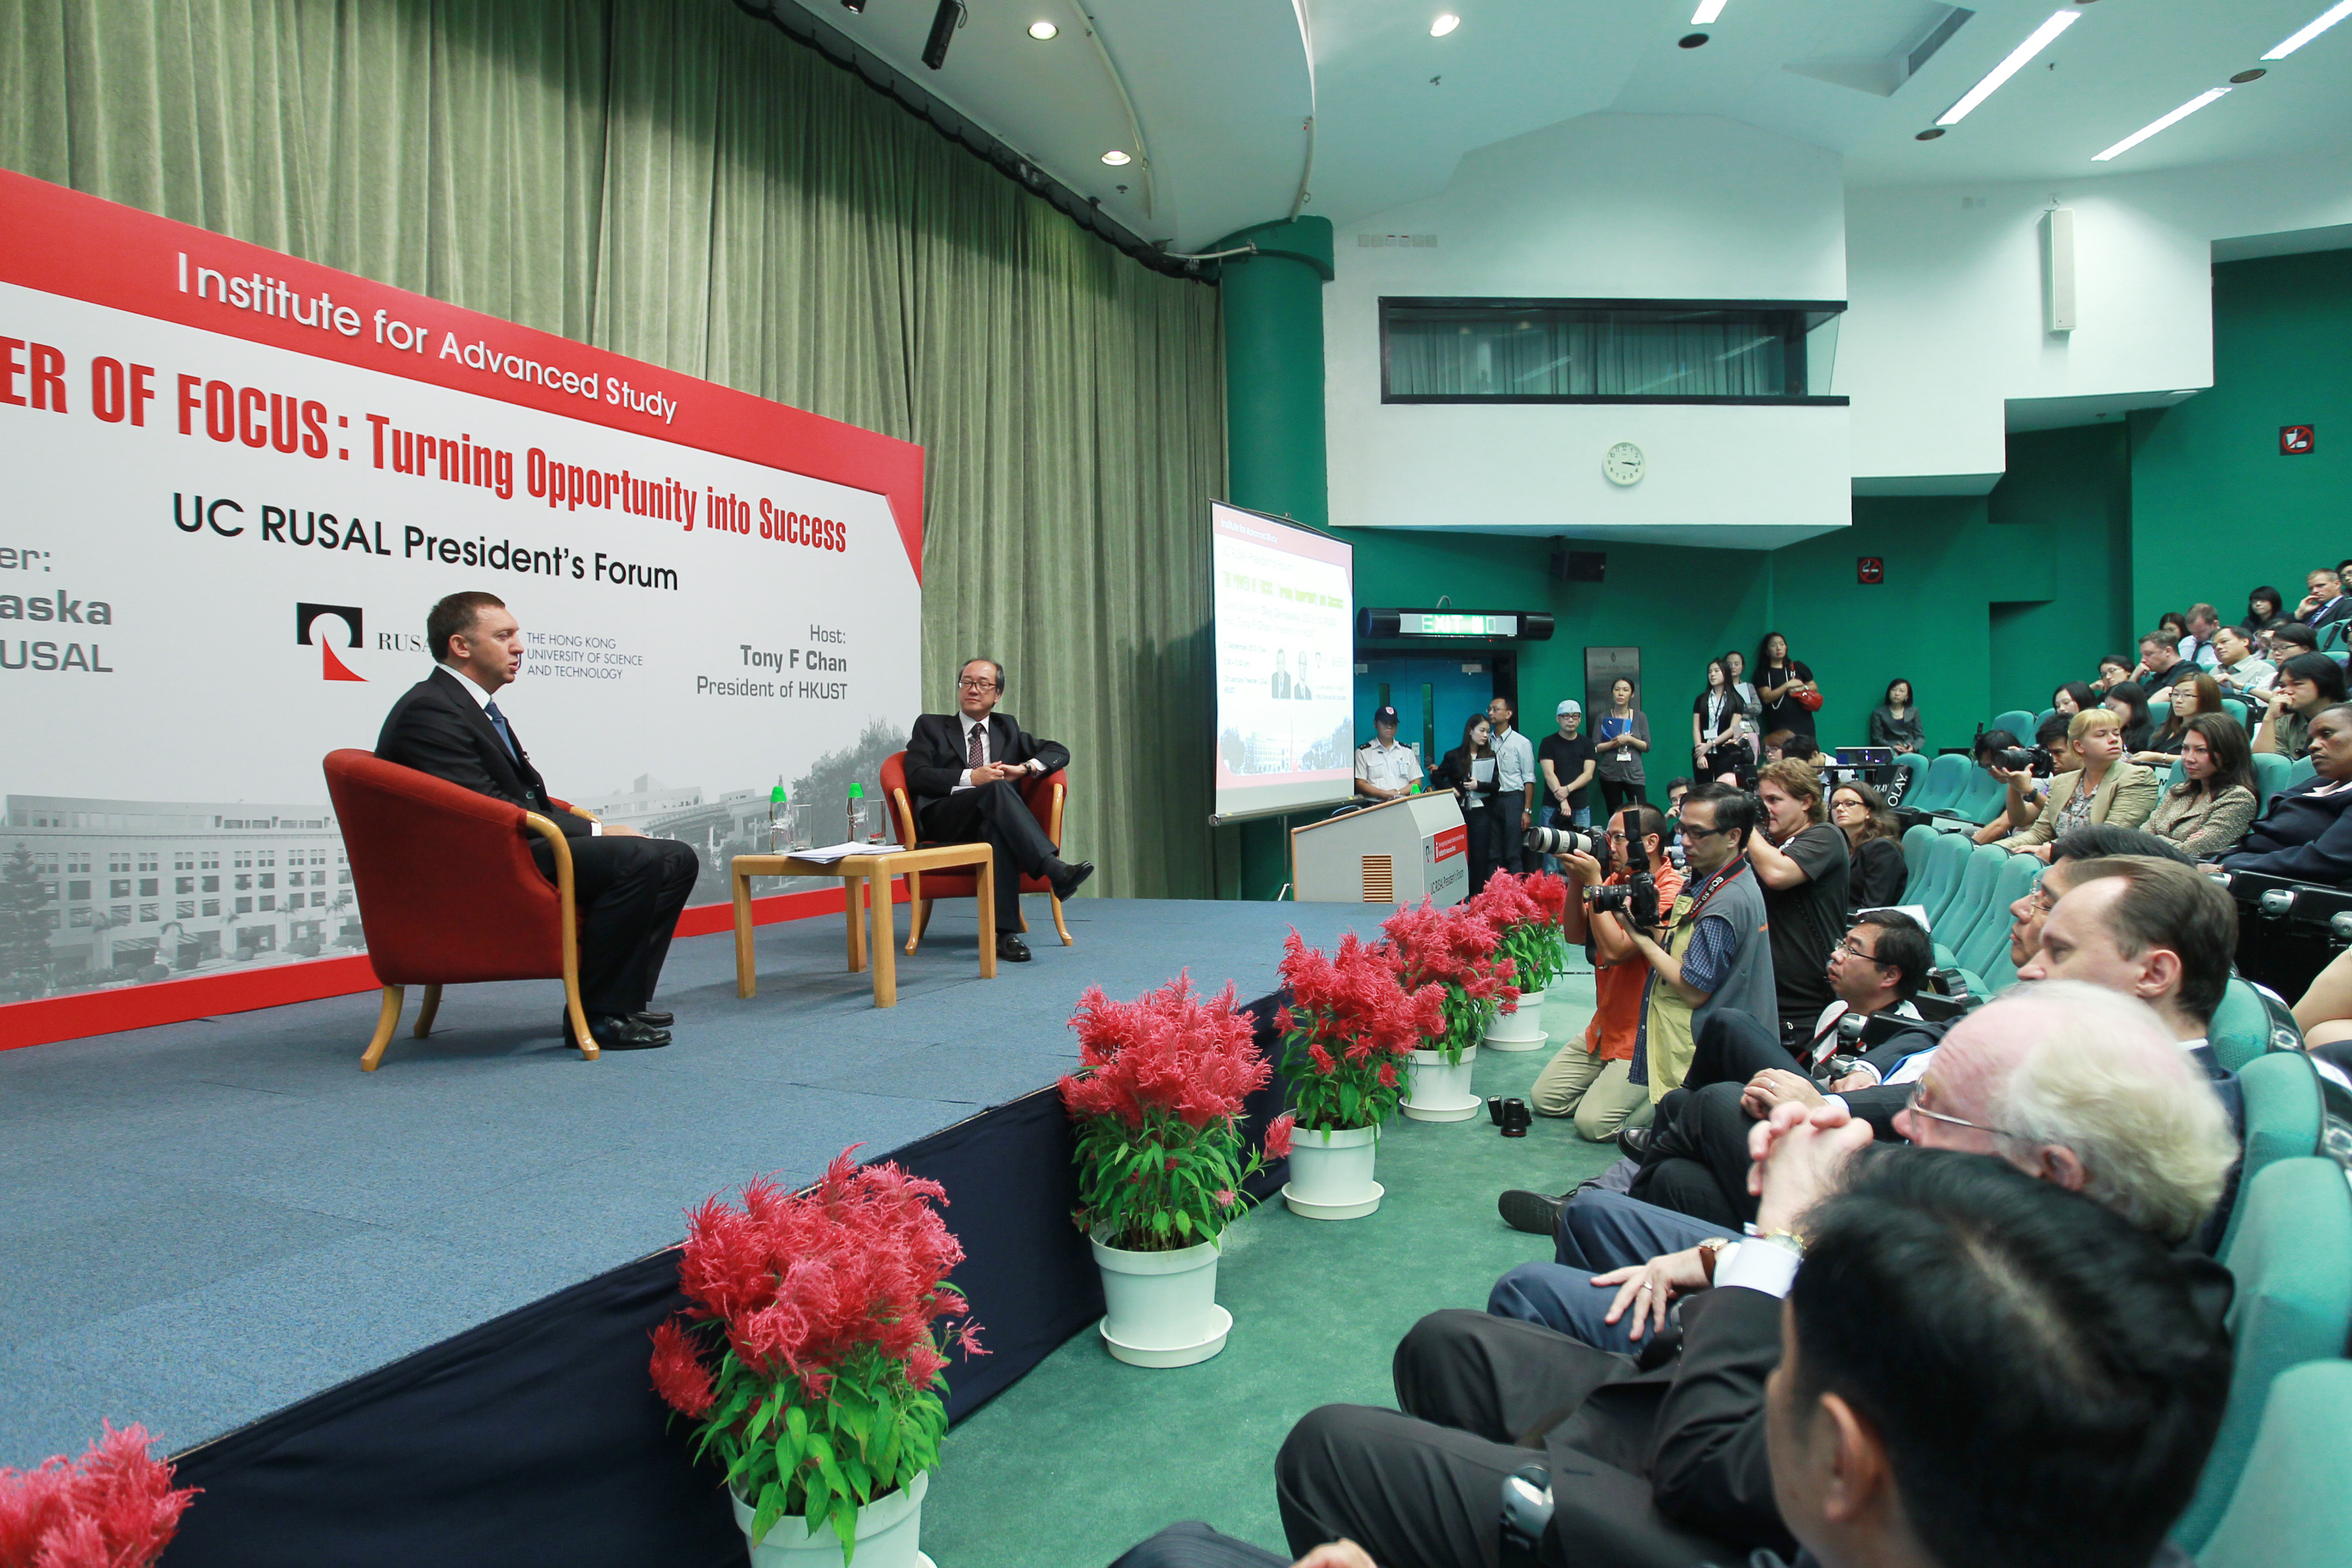 HKUST President Tony F Chan and UC RUSAL Chief Executive